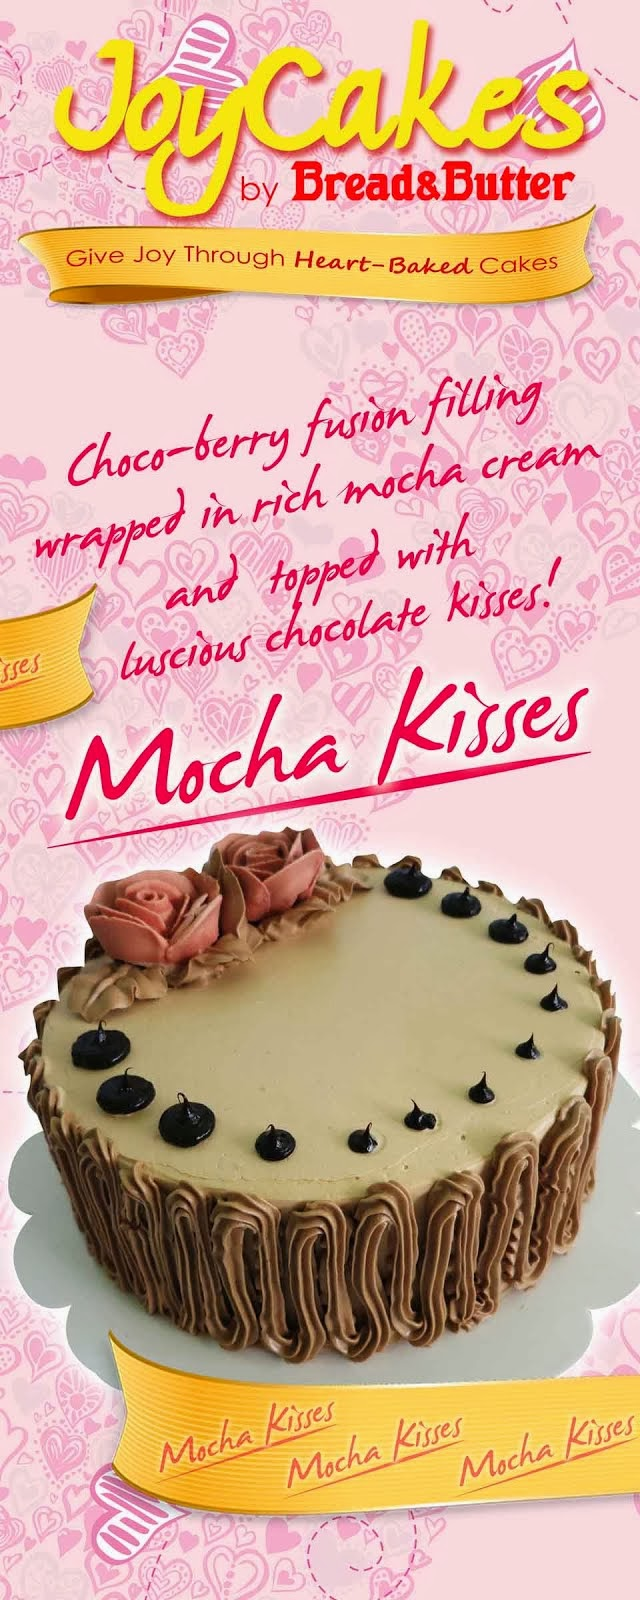 Mocha Kisses Joycakes by Bread & Butter